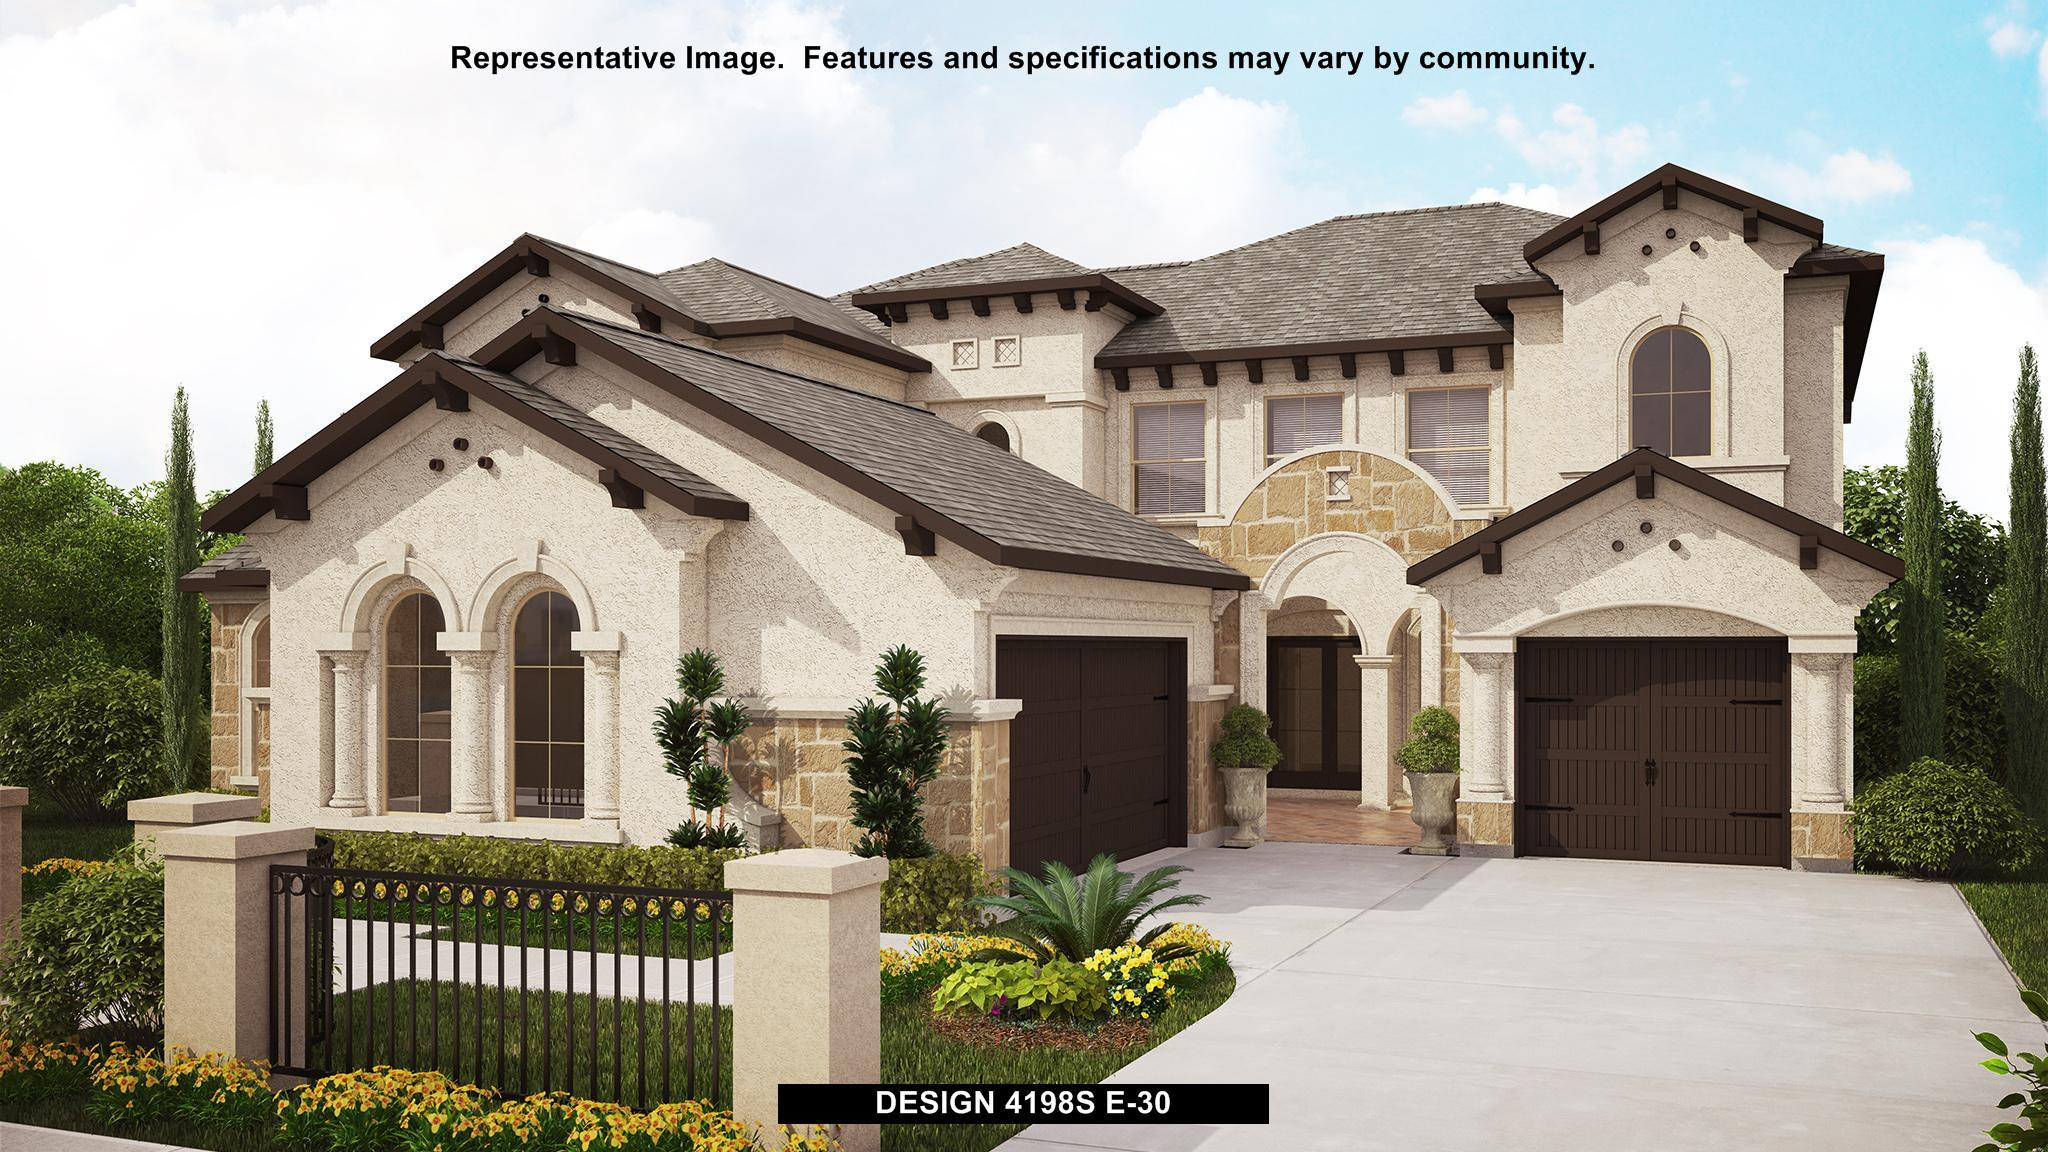 Single Family for Sale at The Grove At Vintage Oaks 70' - 4198s 581 Vale Court New Braunfels, Texas 78132 United States